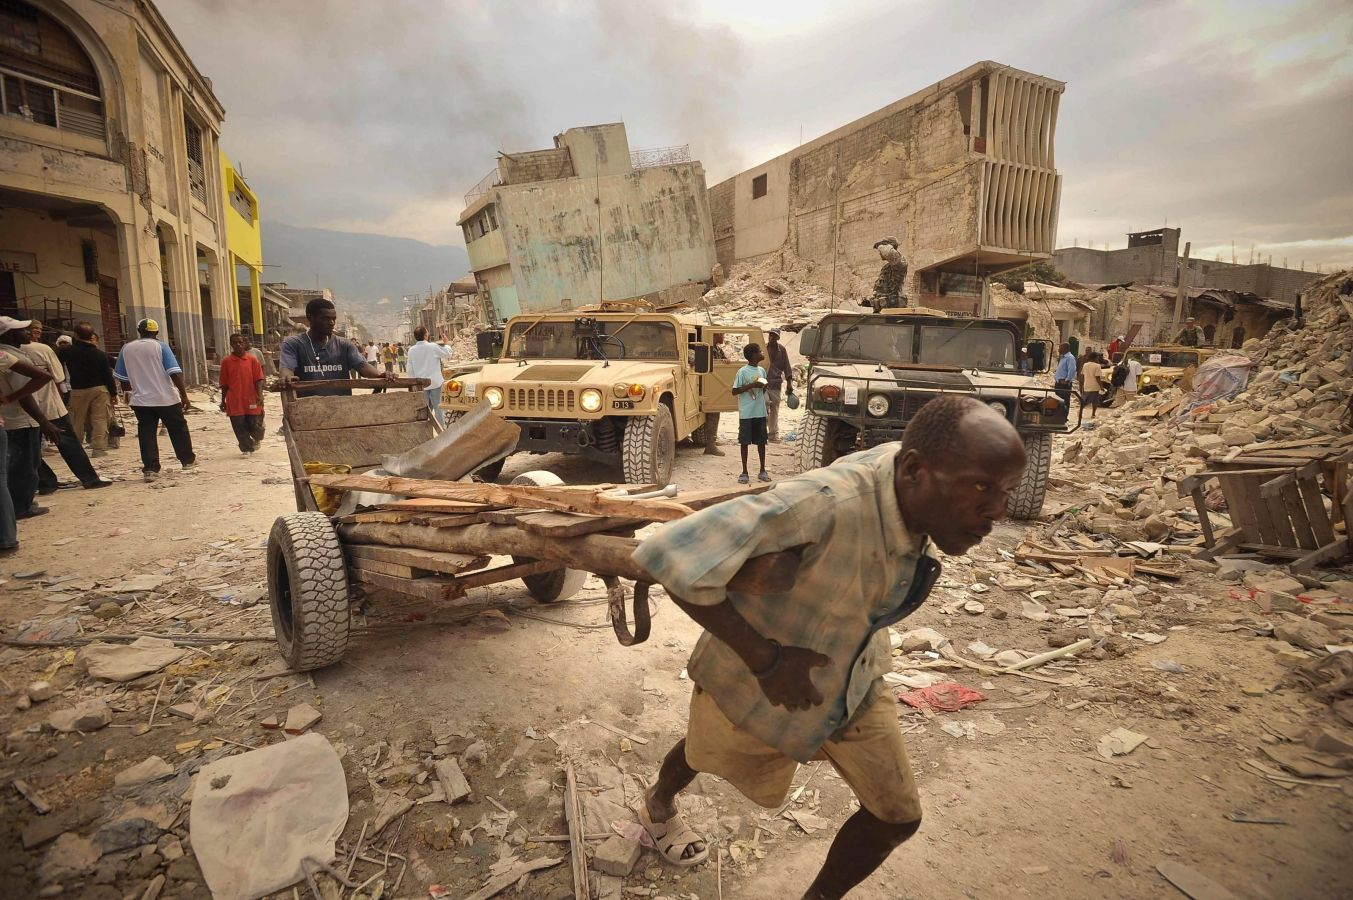 A man scavenges for materials to rebuild his home as US soldiers keep a security presence nearby. Port Au Prince Haiti.